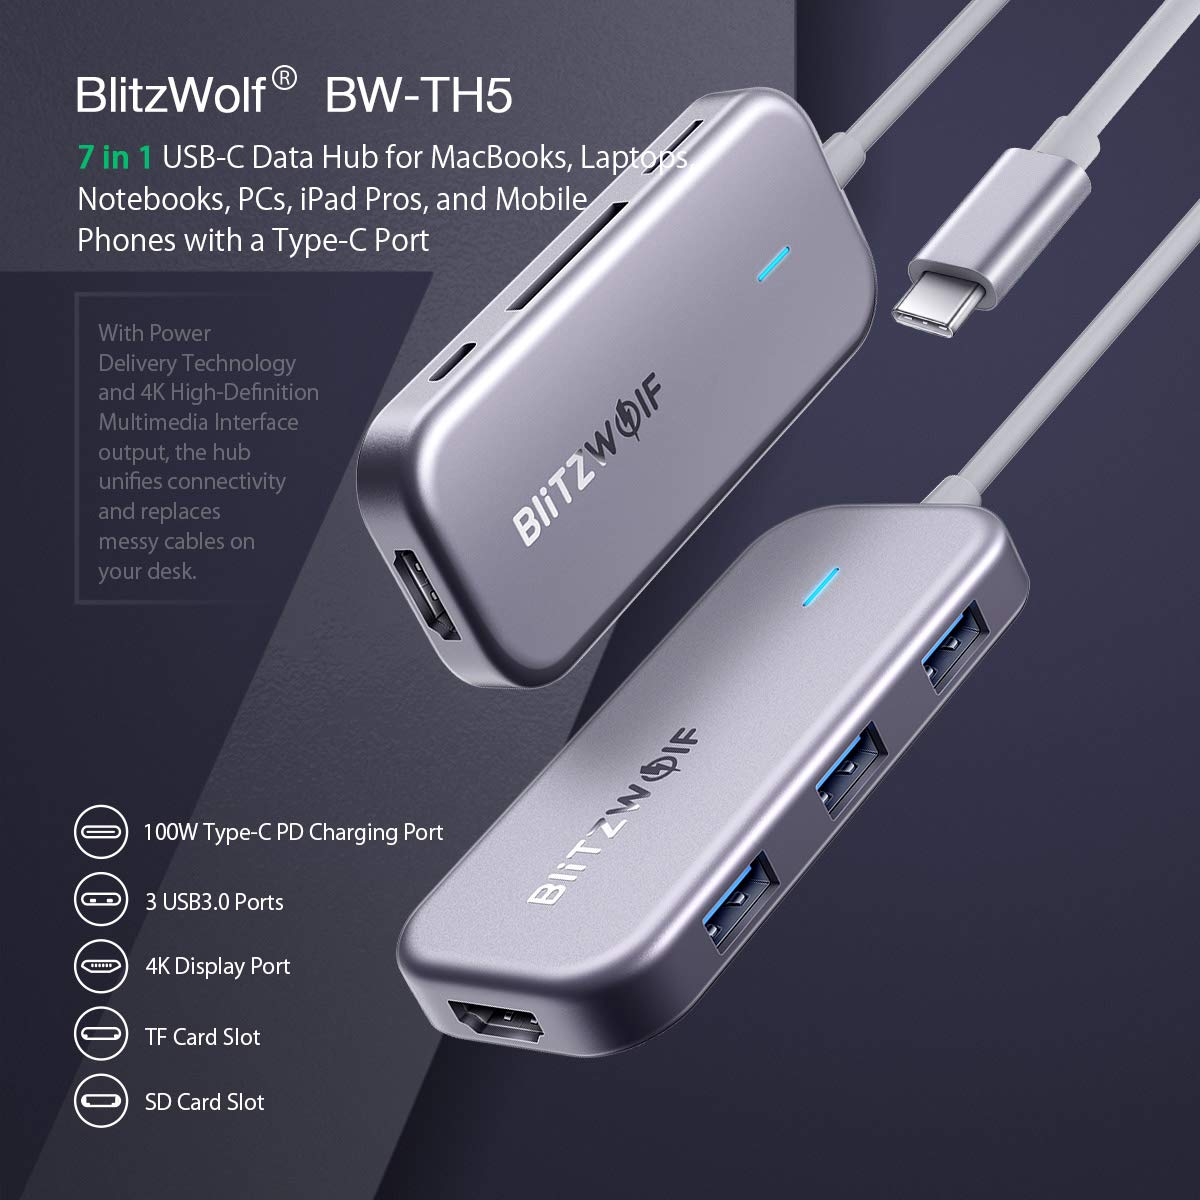 100W Type C PD Chromebook BlitzWolf 7 Ports Multifunctional Type C Adapter with 4K HDMI 3 USB 3.0 Ports More USB C Devices Huawei MateBook SD//TF Card Reader for MacBook Pro 2018//2017 USB C Hub